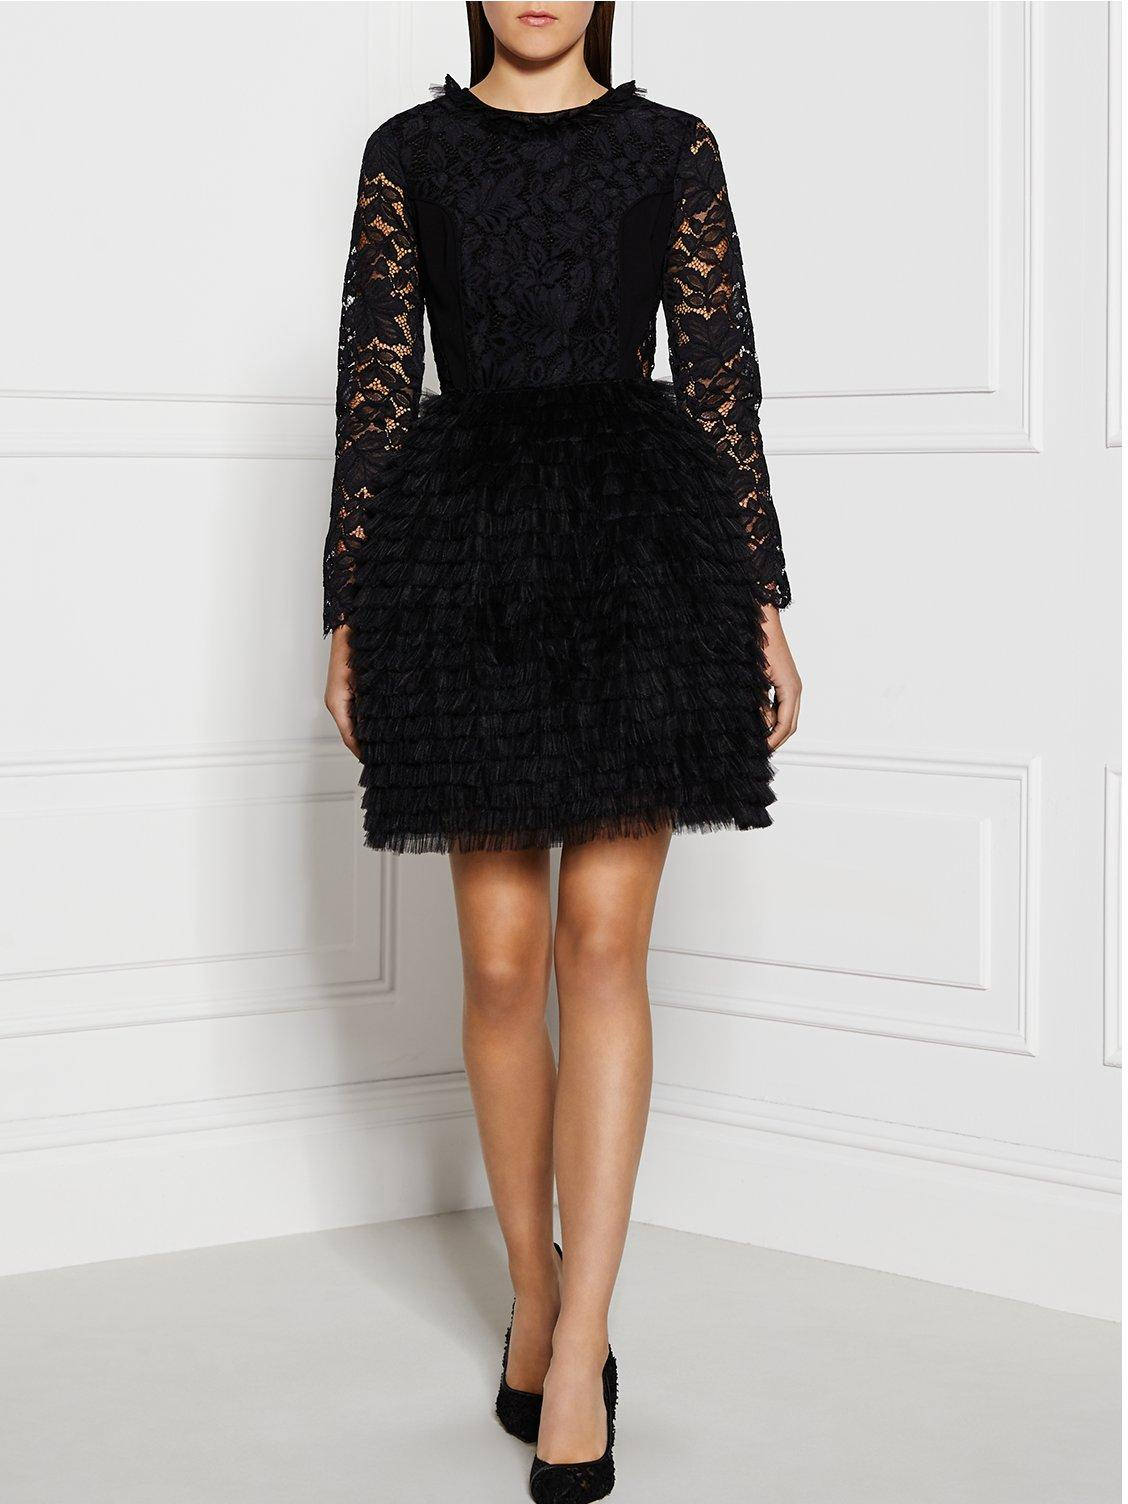 Marcjacobs Black Lace Dress